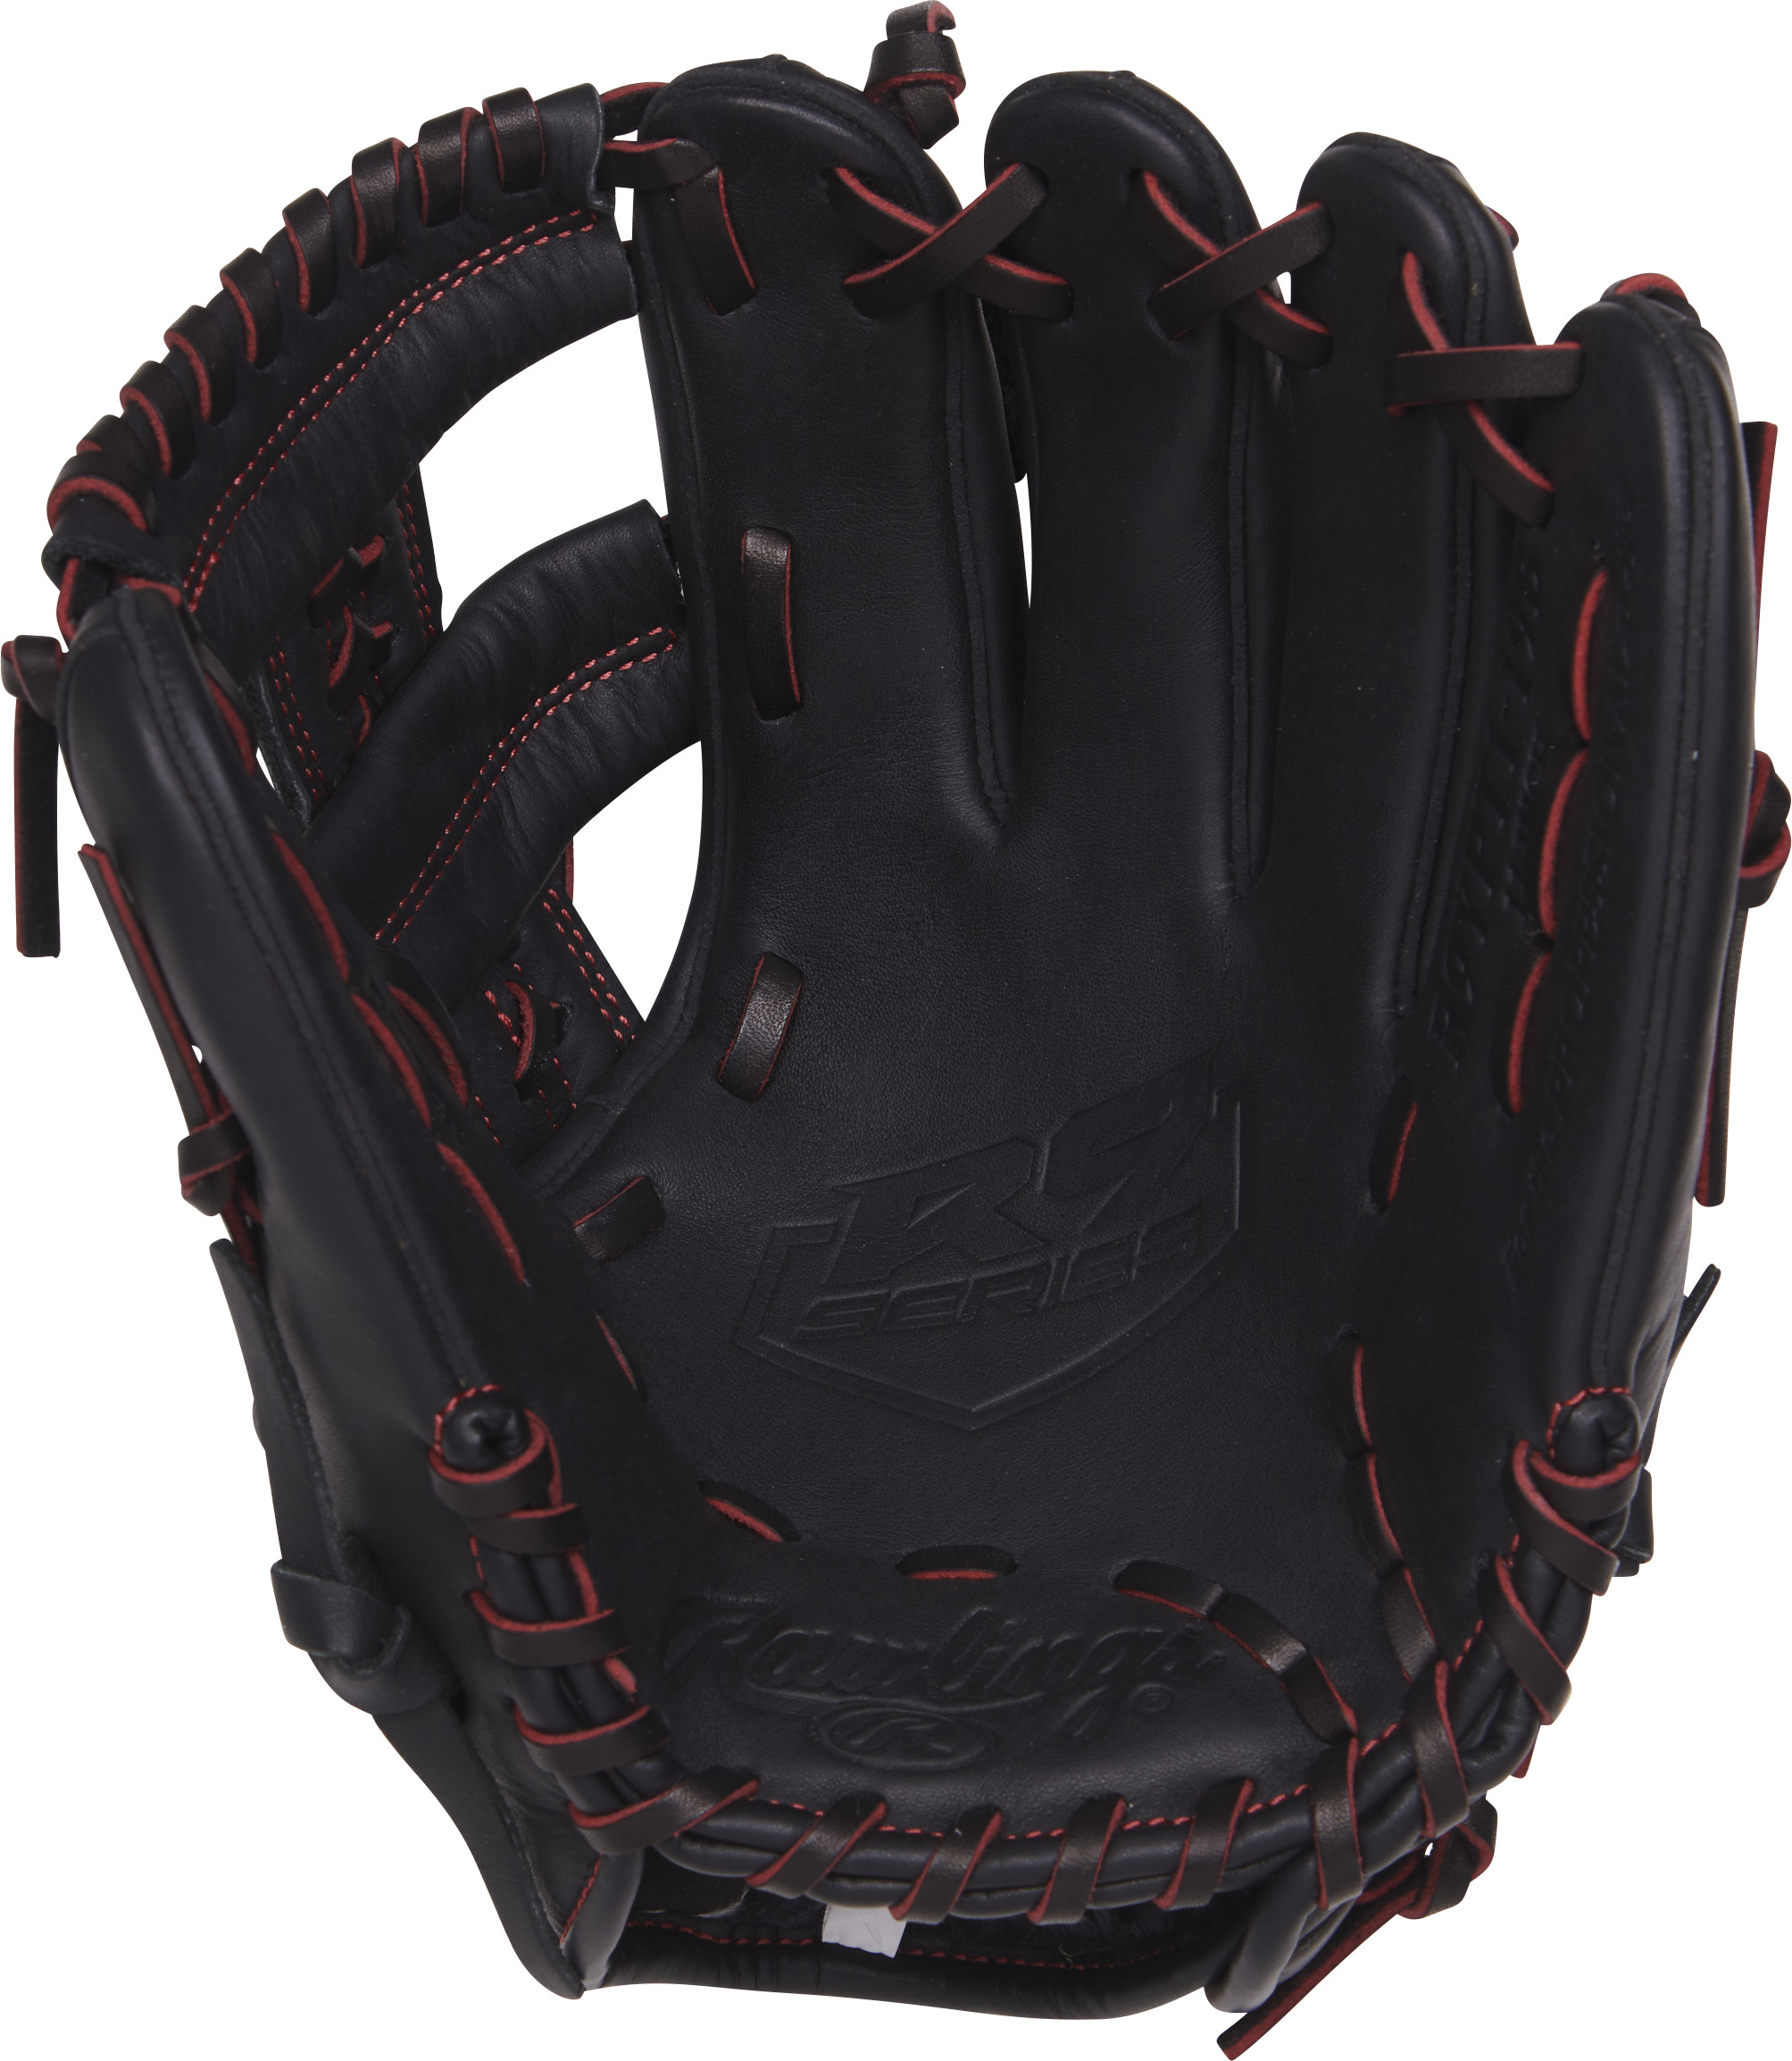 http://www.bestbatdeals.com/images/gloves/rawlings/R9YPT1-19B-1.jpg